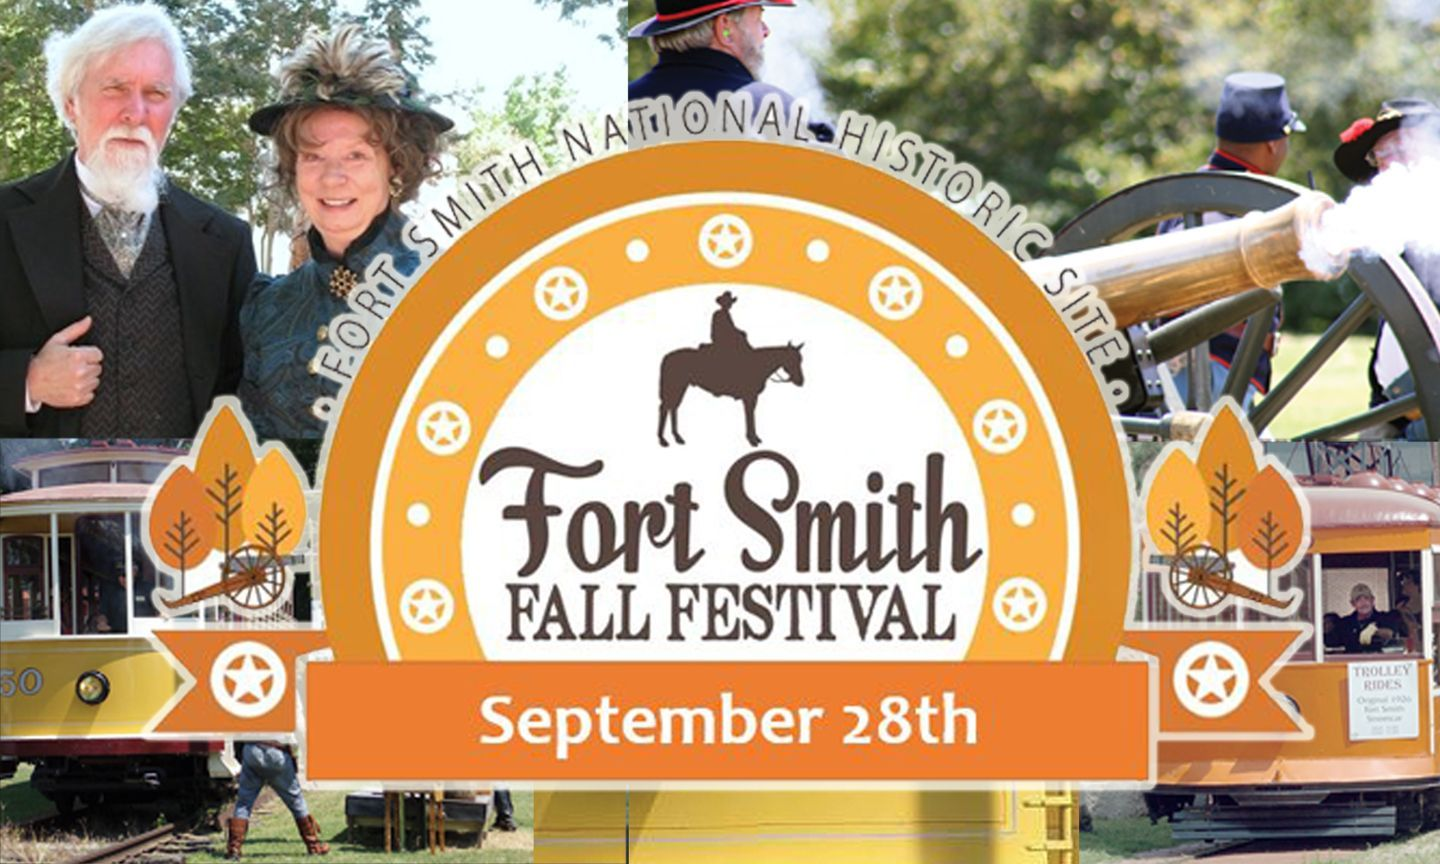 Fort Smith Fall Festival pulls together history and fun